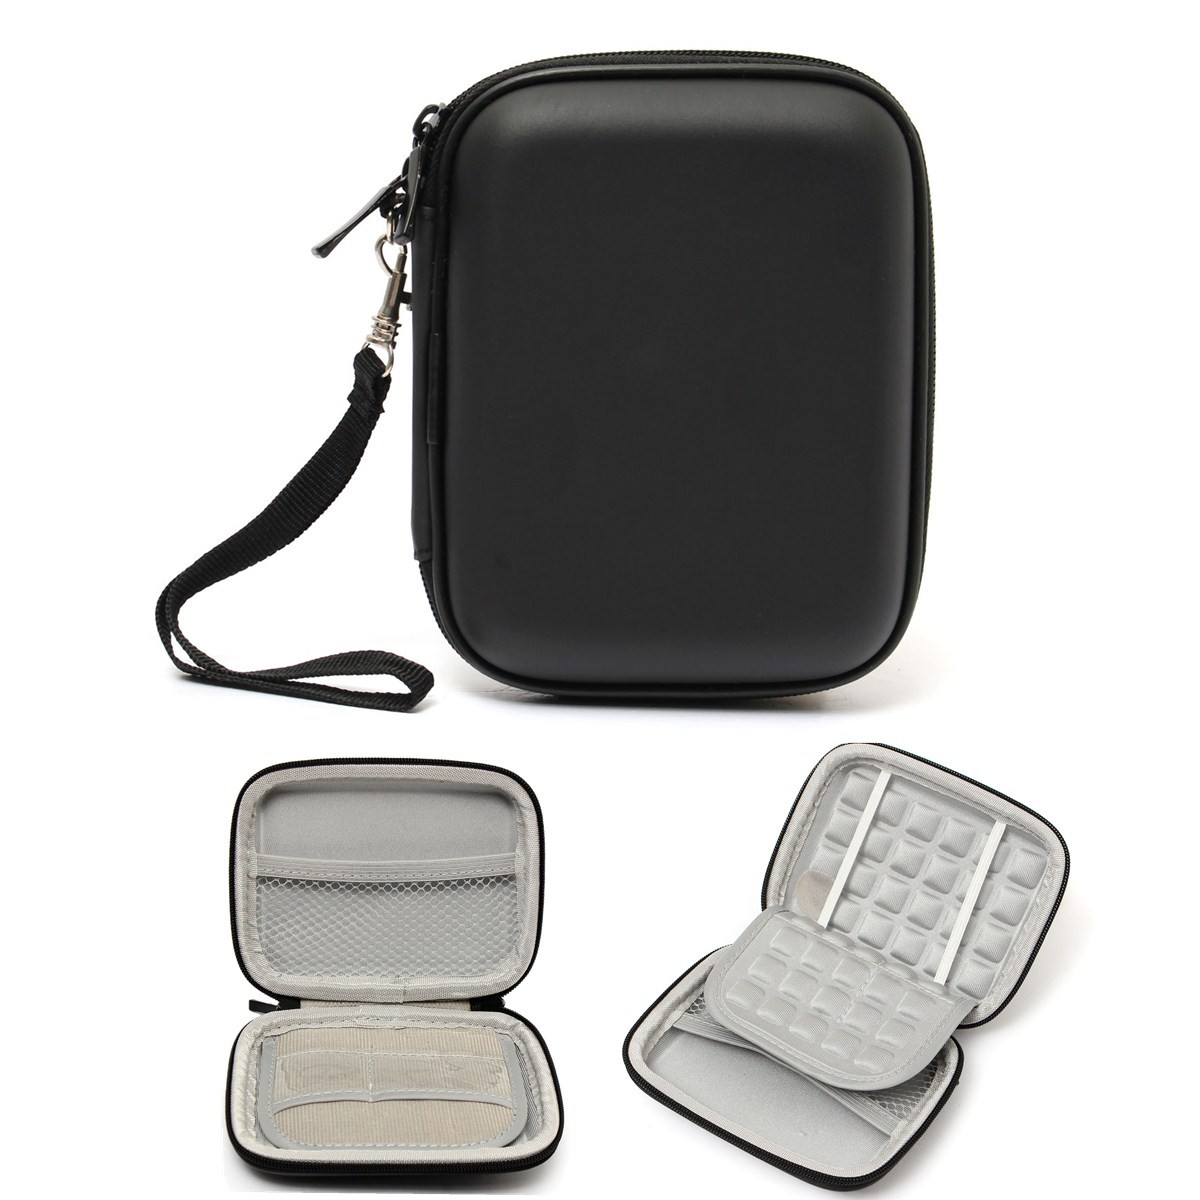 Portable 55 Universal Zipper External Hard Carry Bag Case Pouch Hardisk Eksternal Seagate Expansion 1tb For Protection Disk Drive In Bags Cases